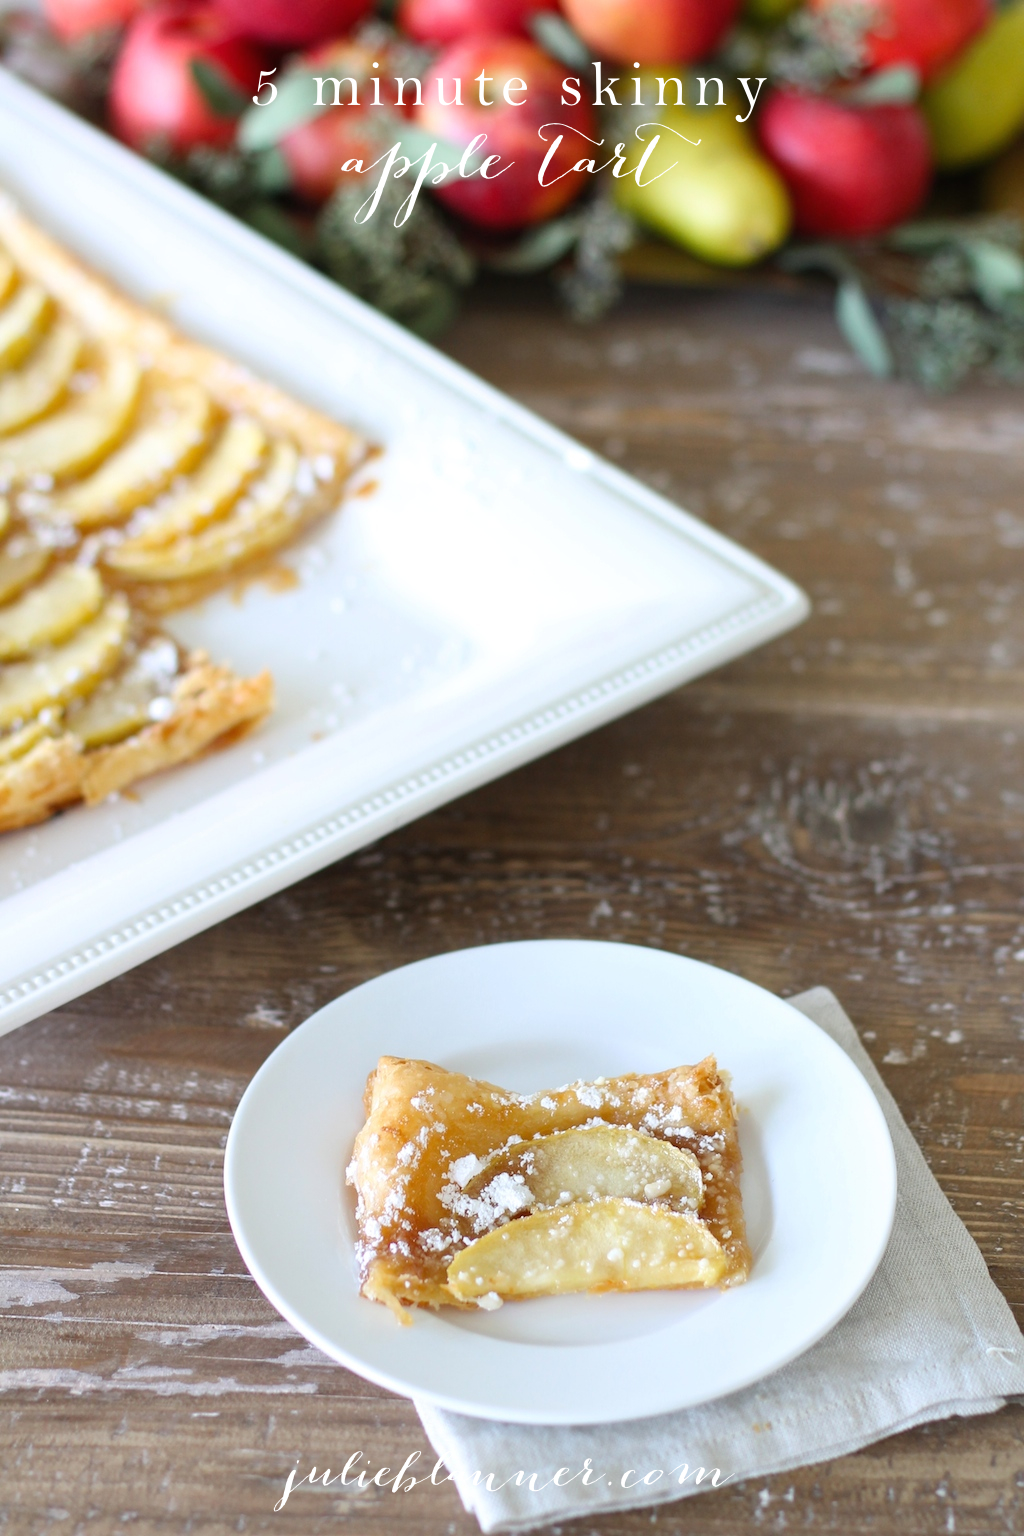 5 Minute Skinny Apple Tart recipe | a favorite fall dessert recipe